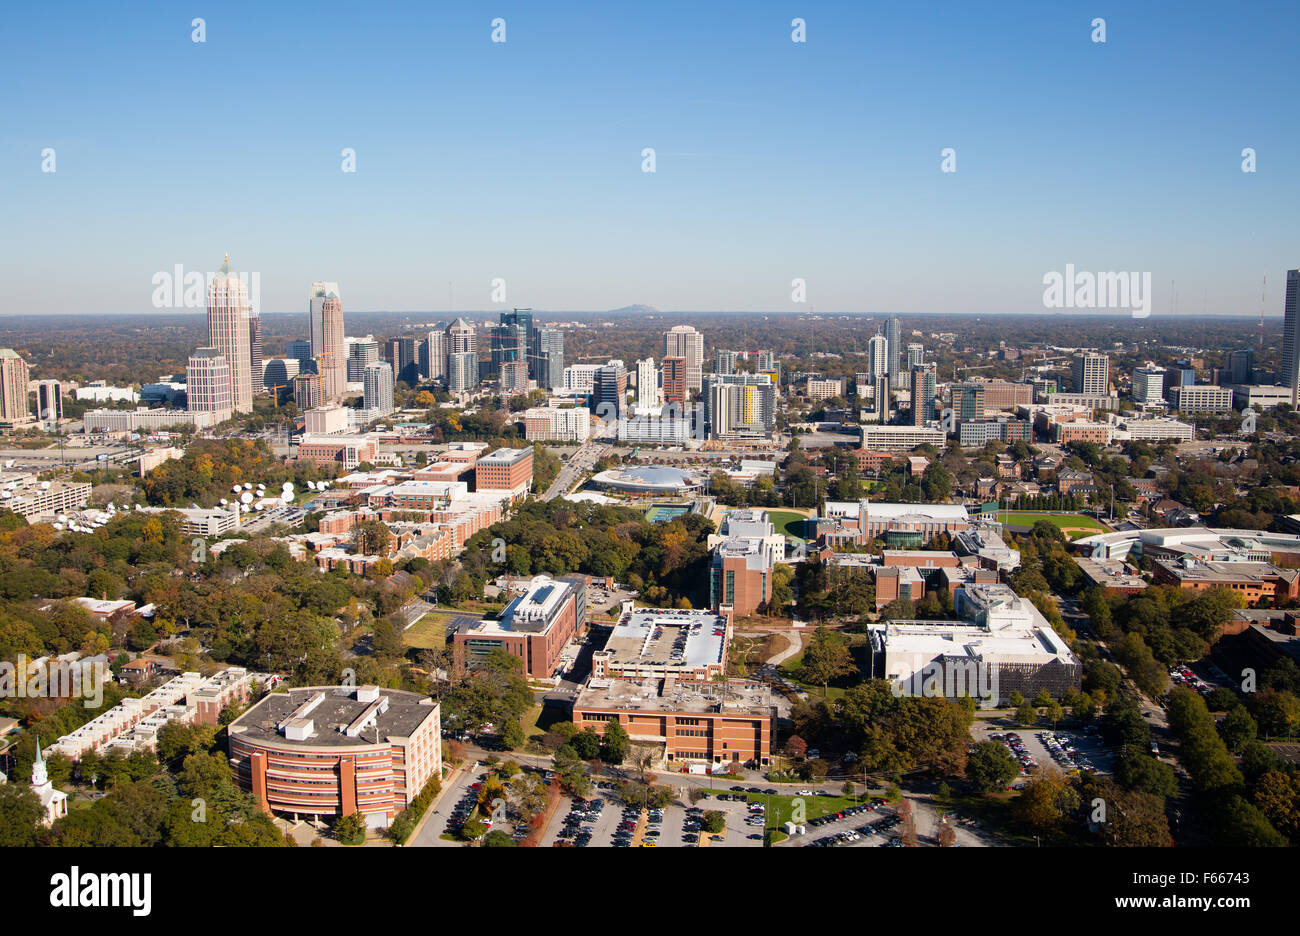 Aerial Photograph of Atlanta, Georgia USA taken on 11/10/2015 showing the Midtown Atlanta area - Stock Image